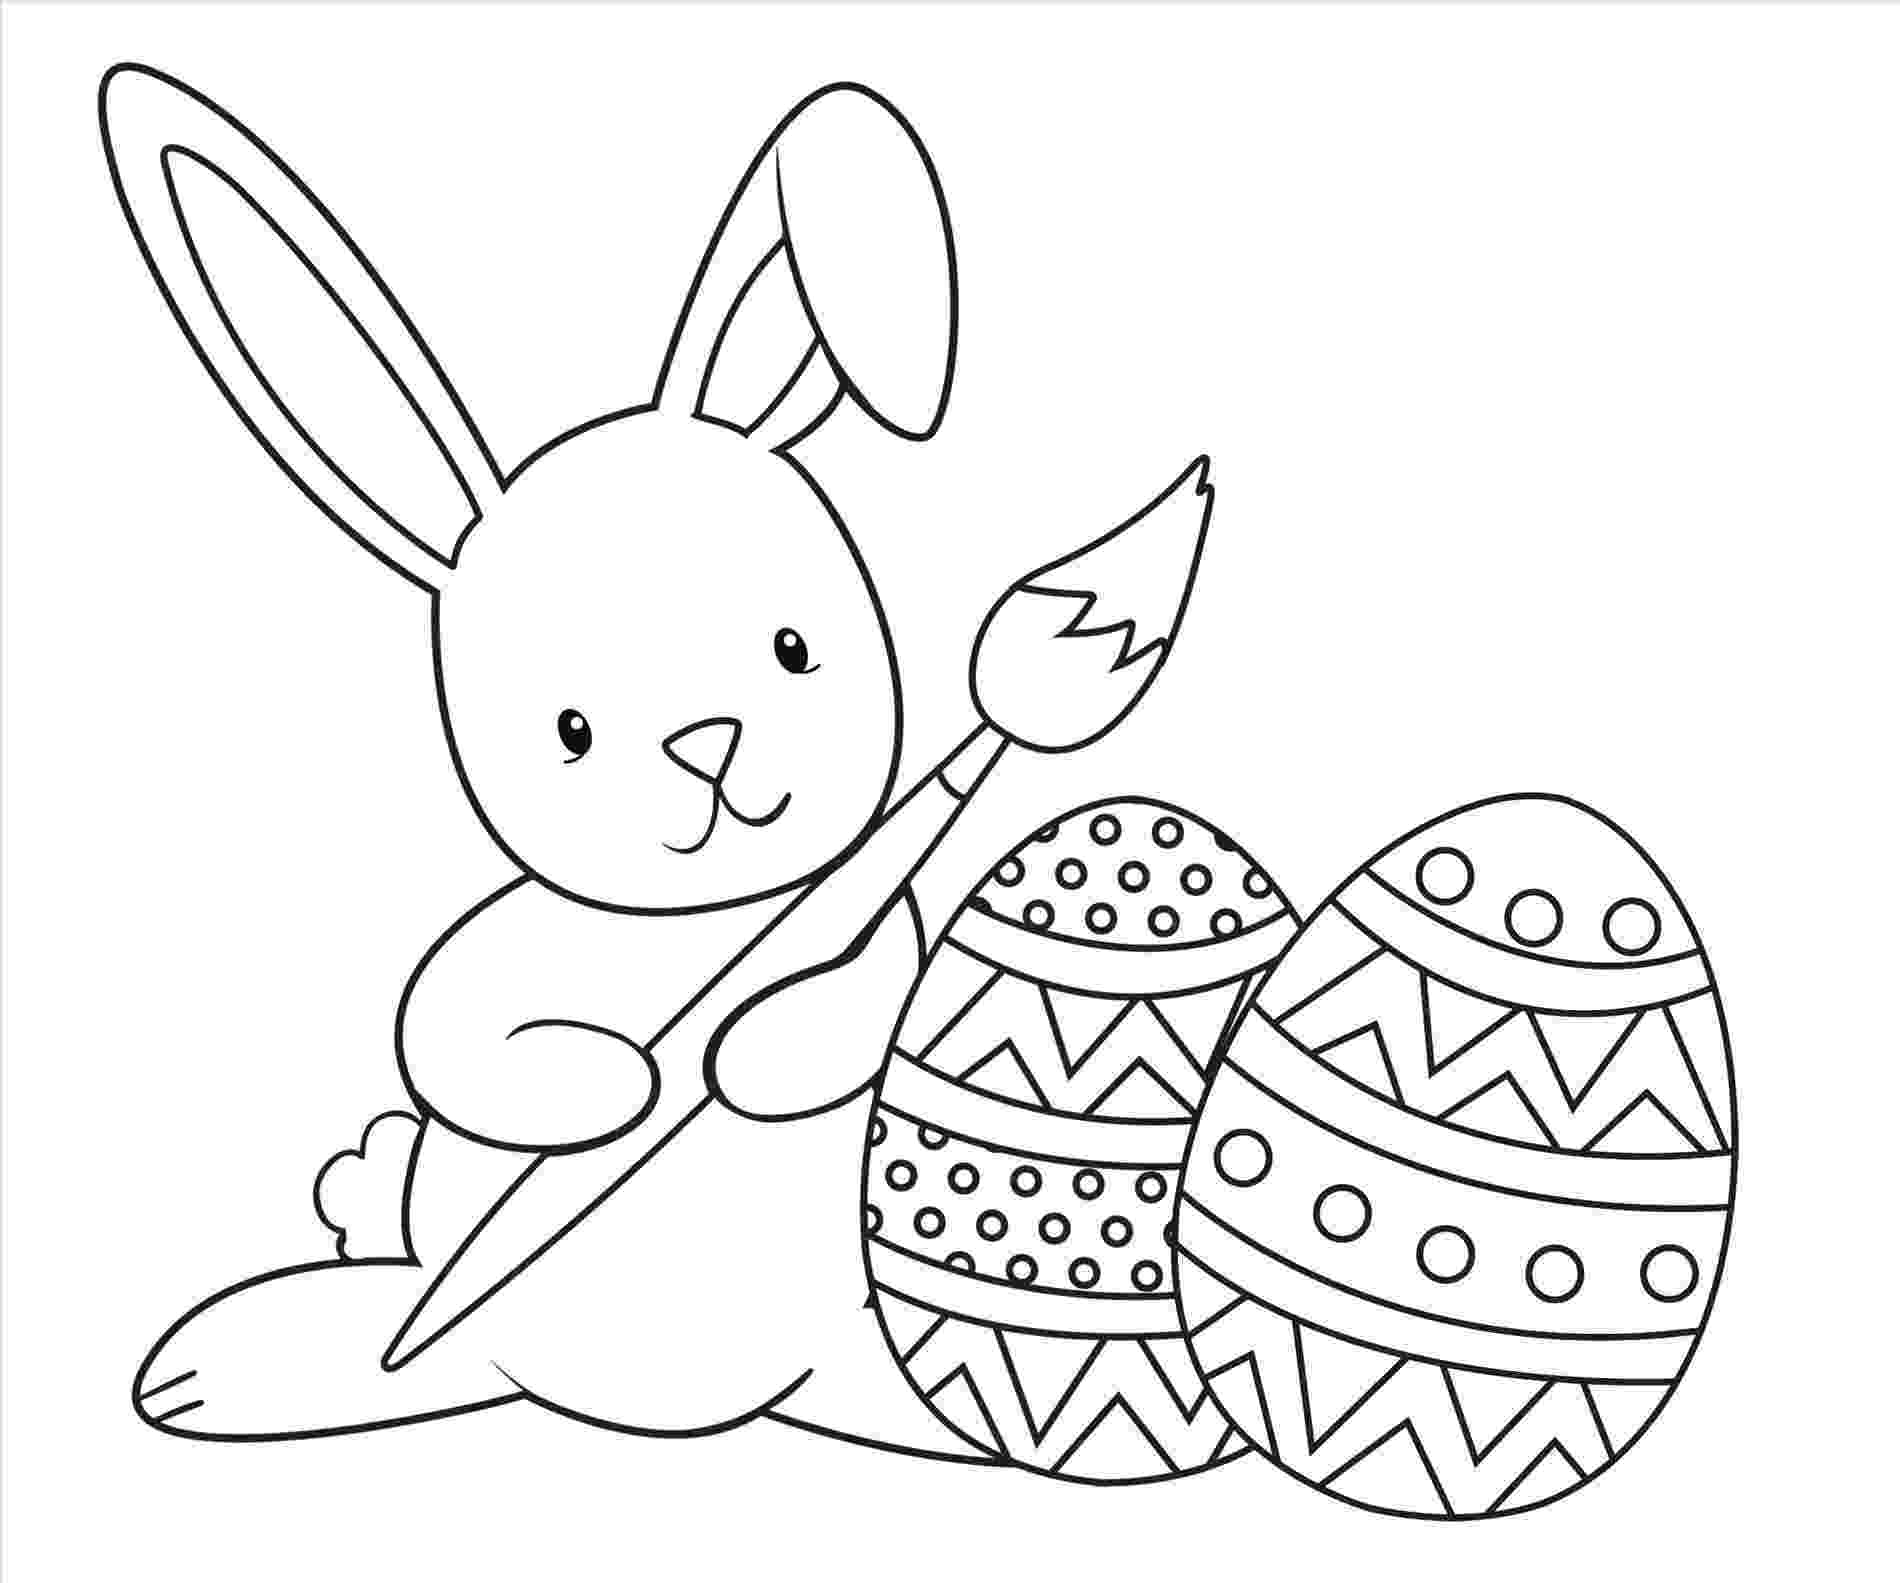 easter bunny images 3 ways to draw the easter bunny wikihow easter images bunny